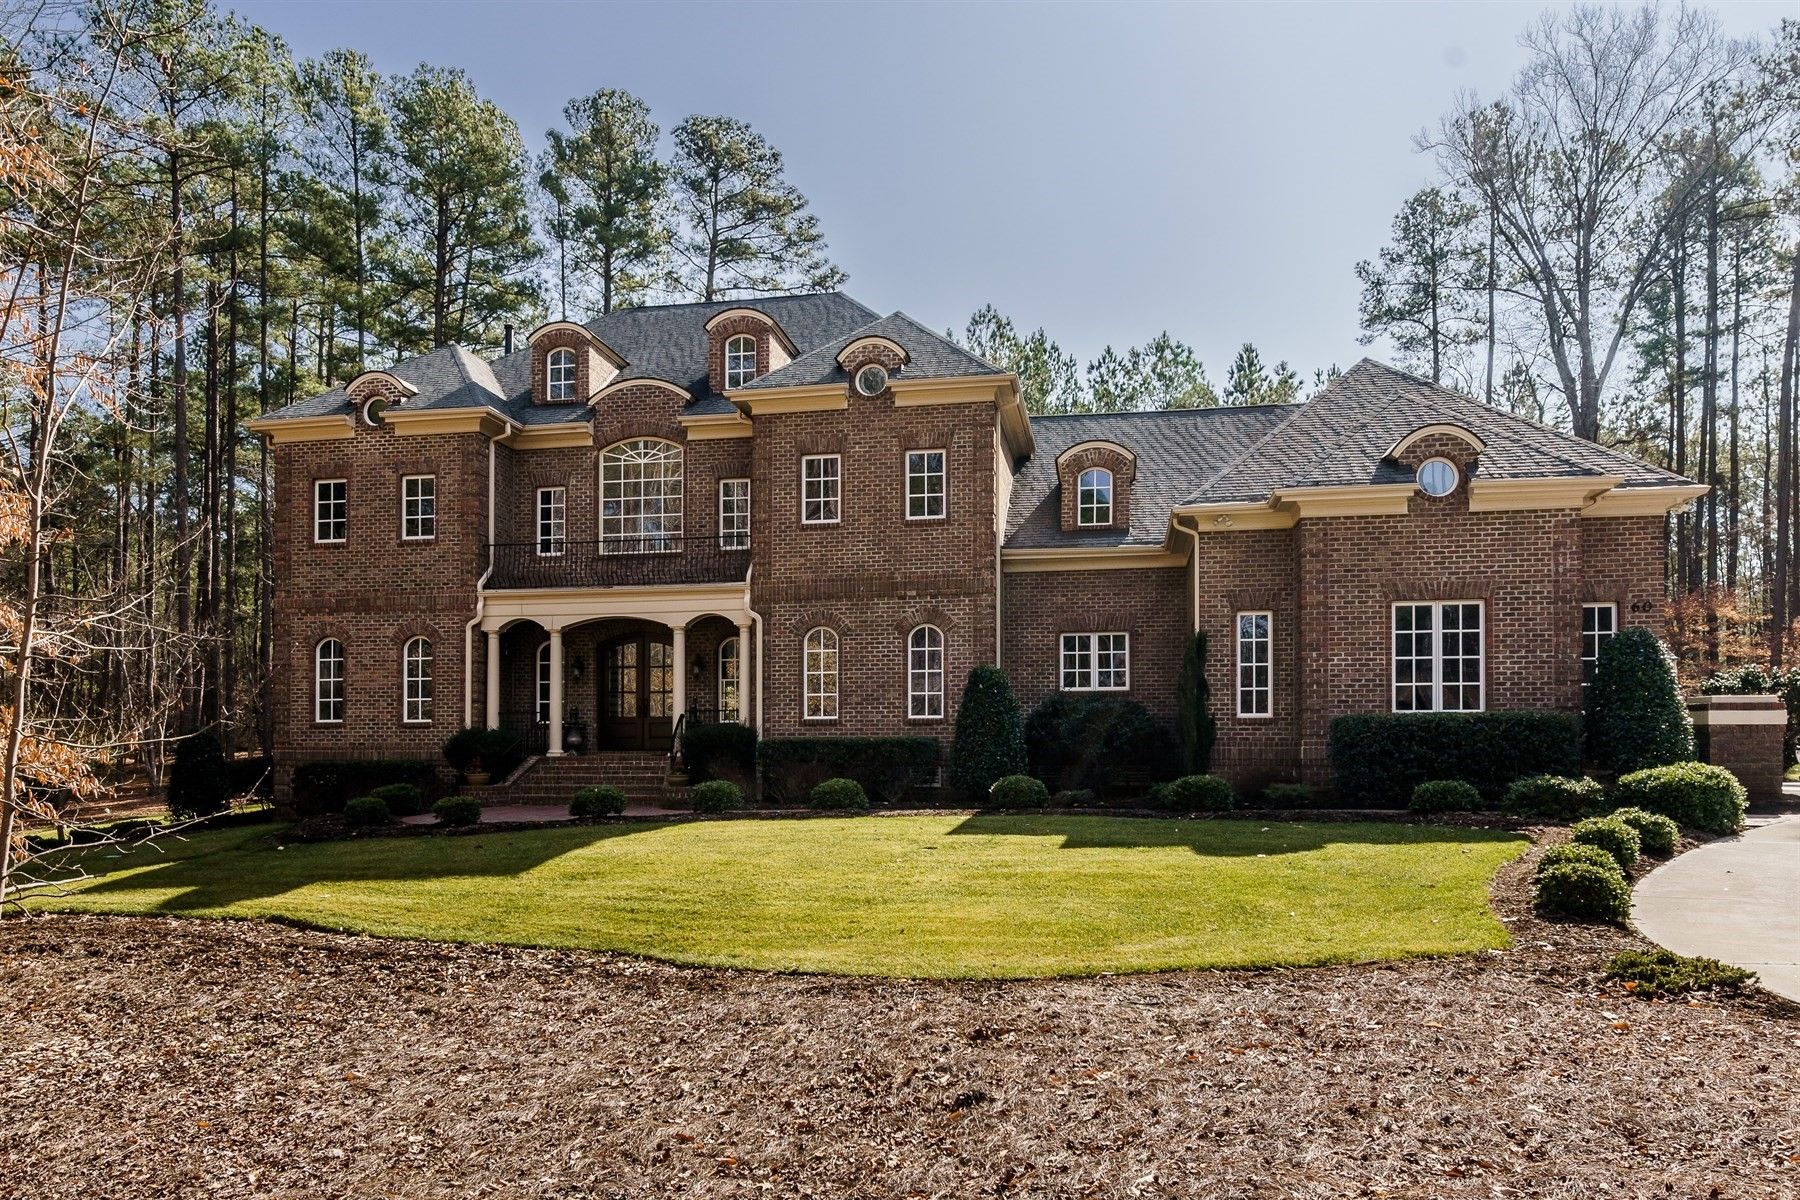 Single Family Homes for Active at The Hills of Rosemont - 60 China Doll Court 60 China Doll Court Durham, North Carolina 27713 United States